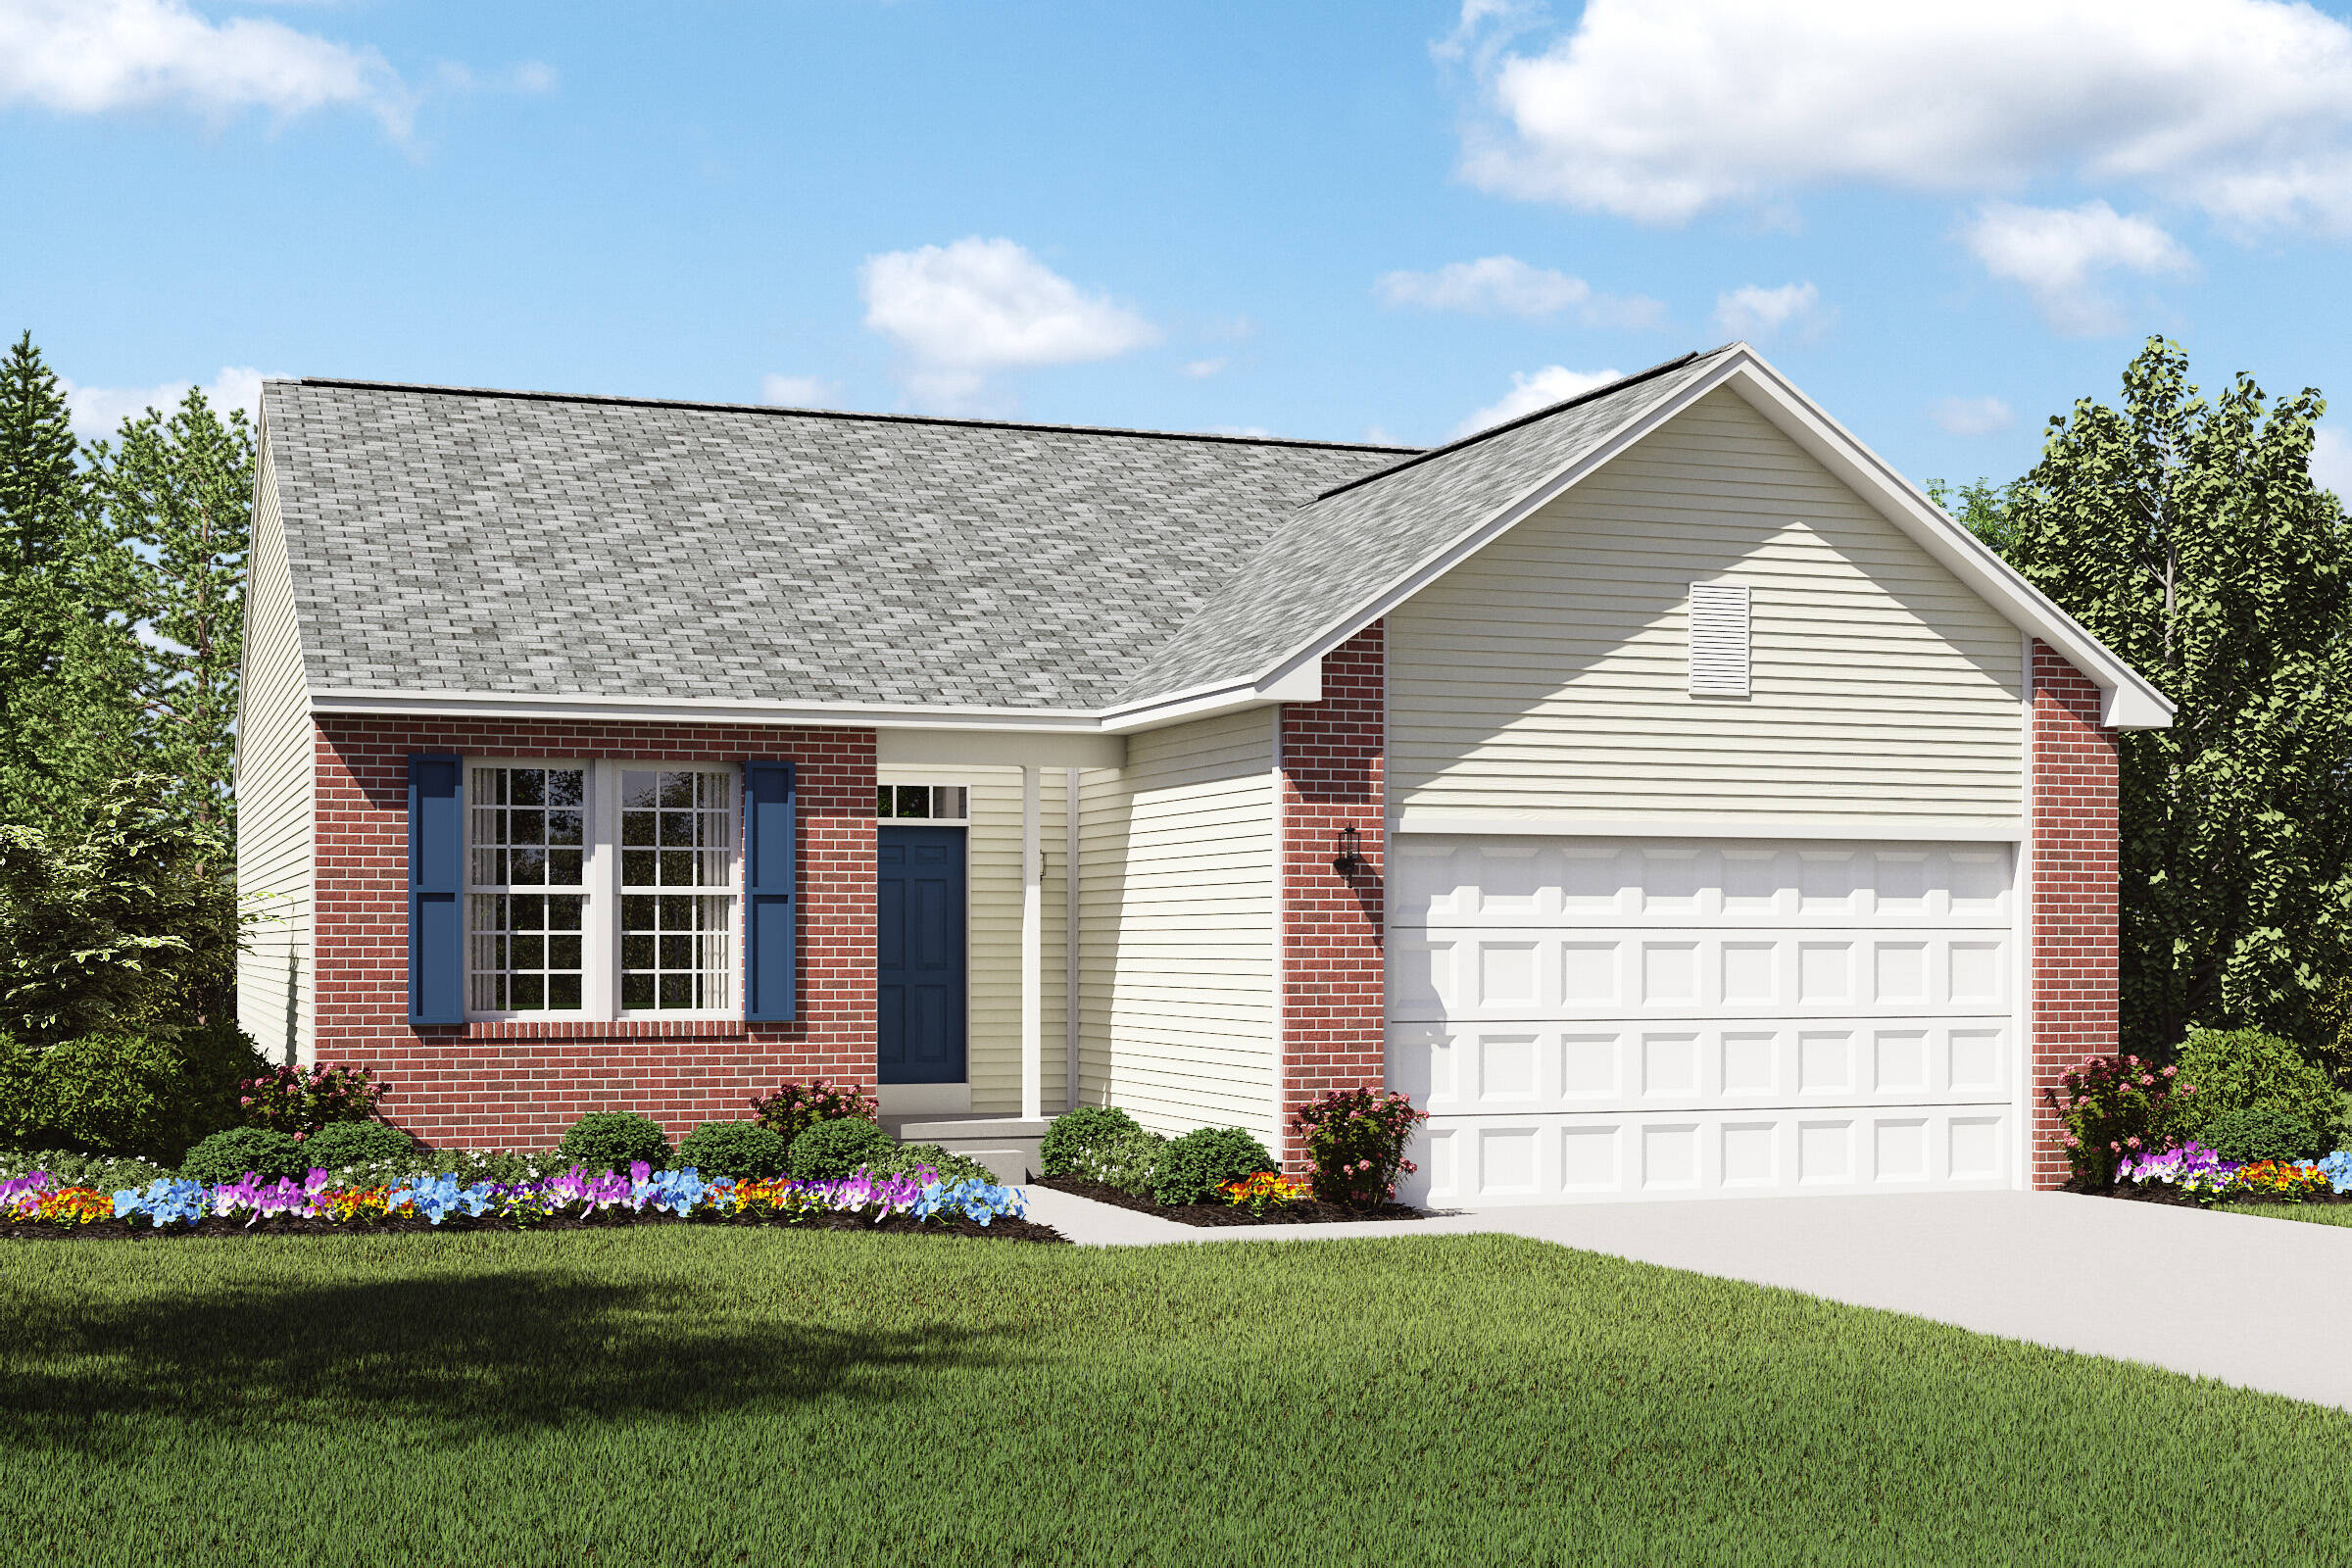 ... Ideal Home Design International Inc The Landings At Martin U0027s Run  New Homes In Lorain Oh ...